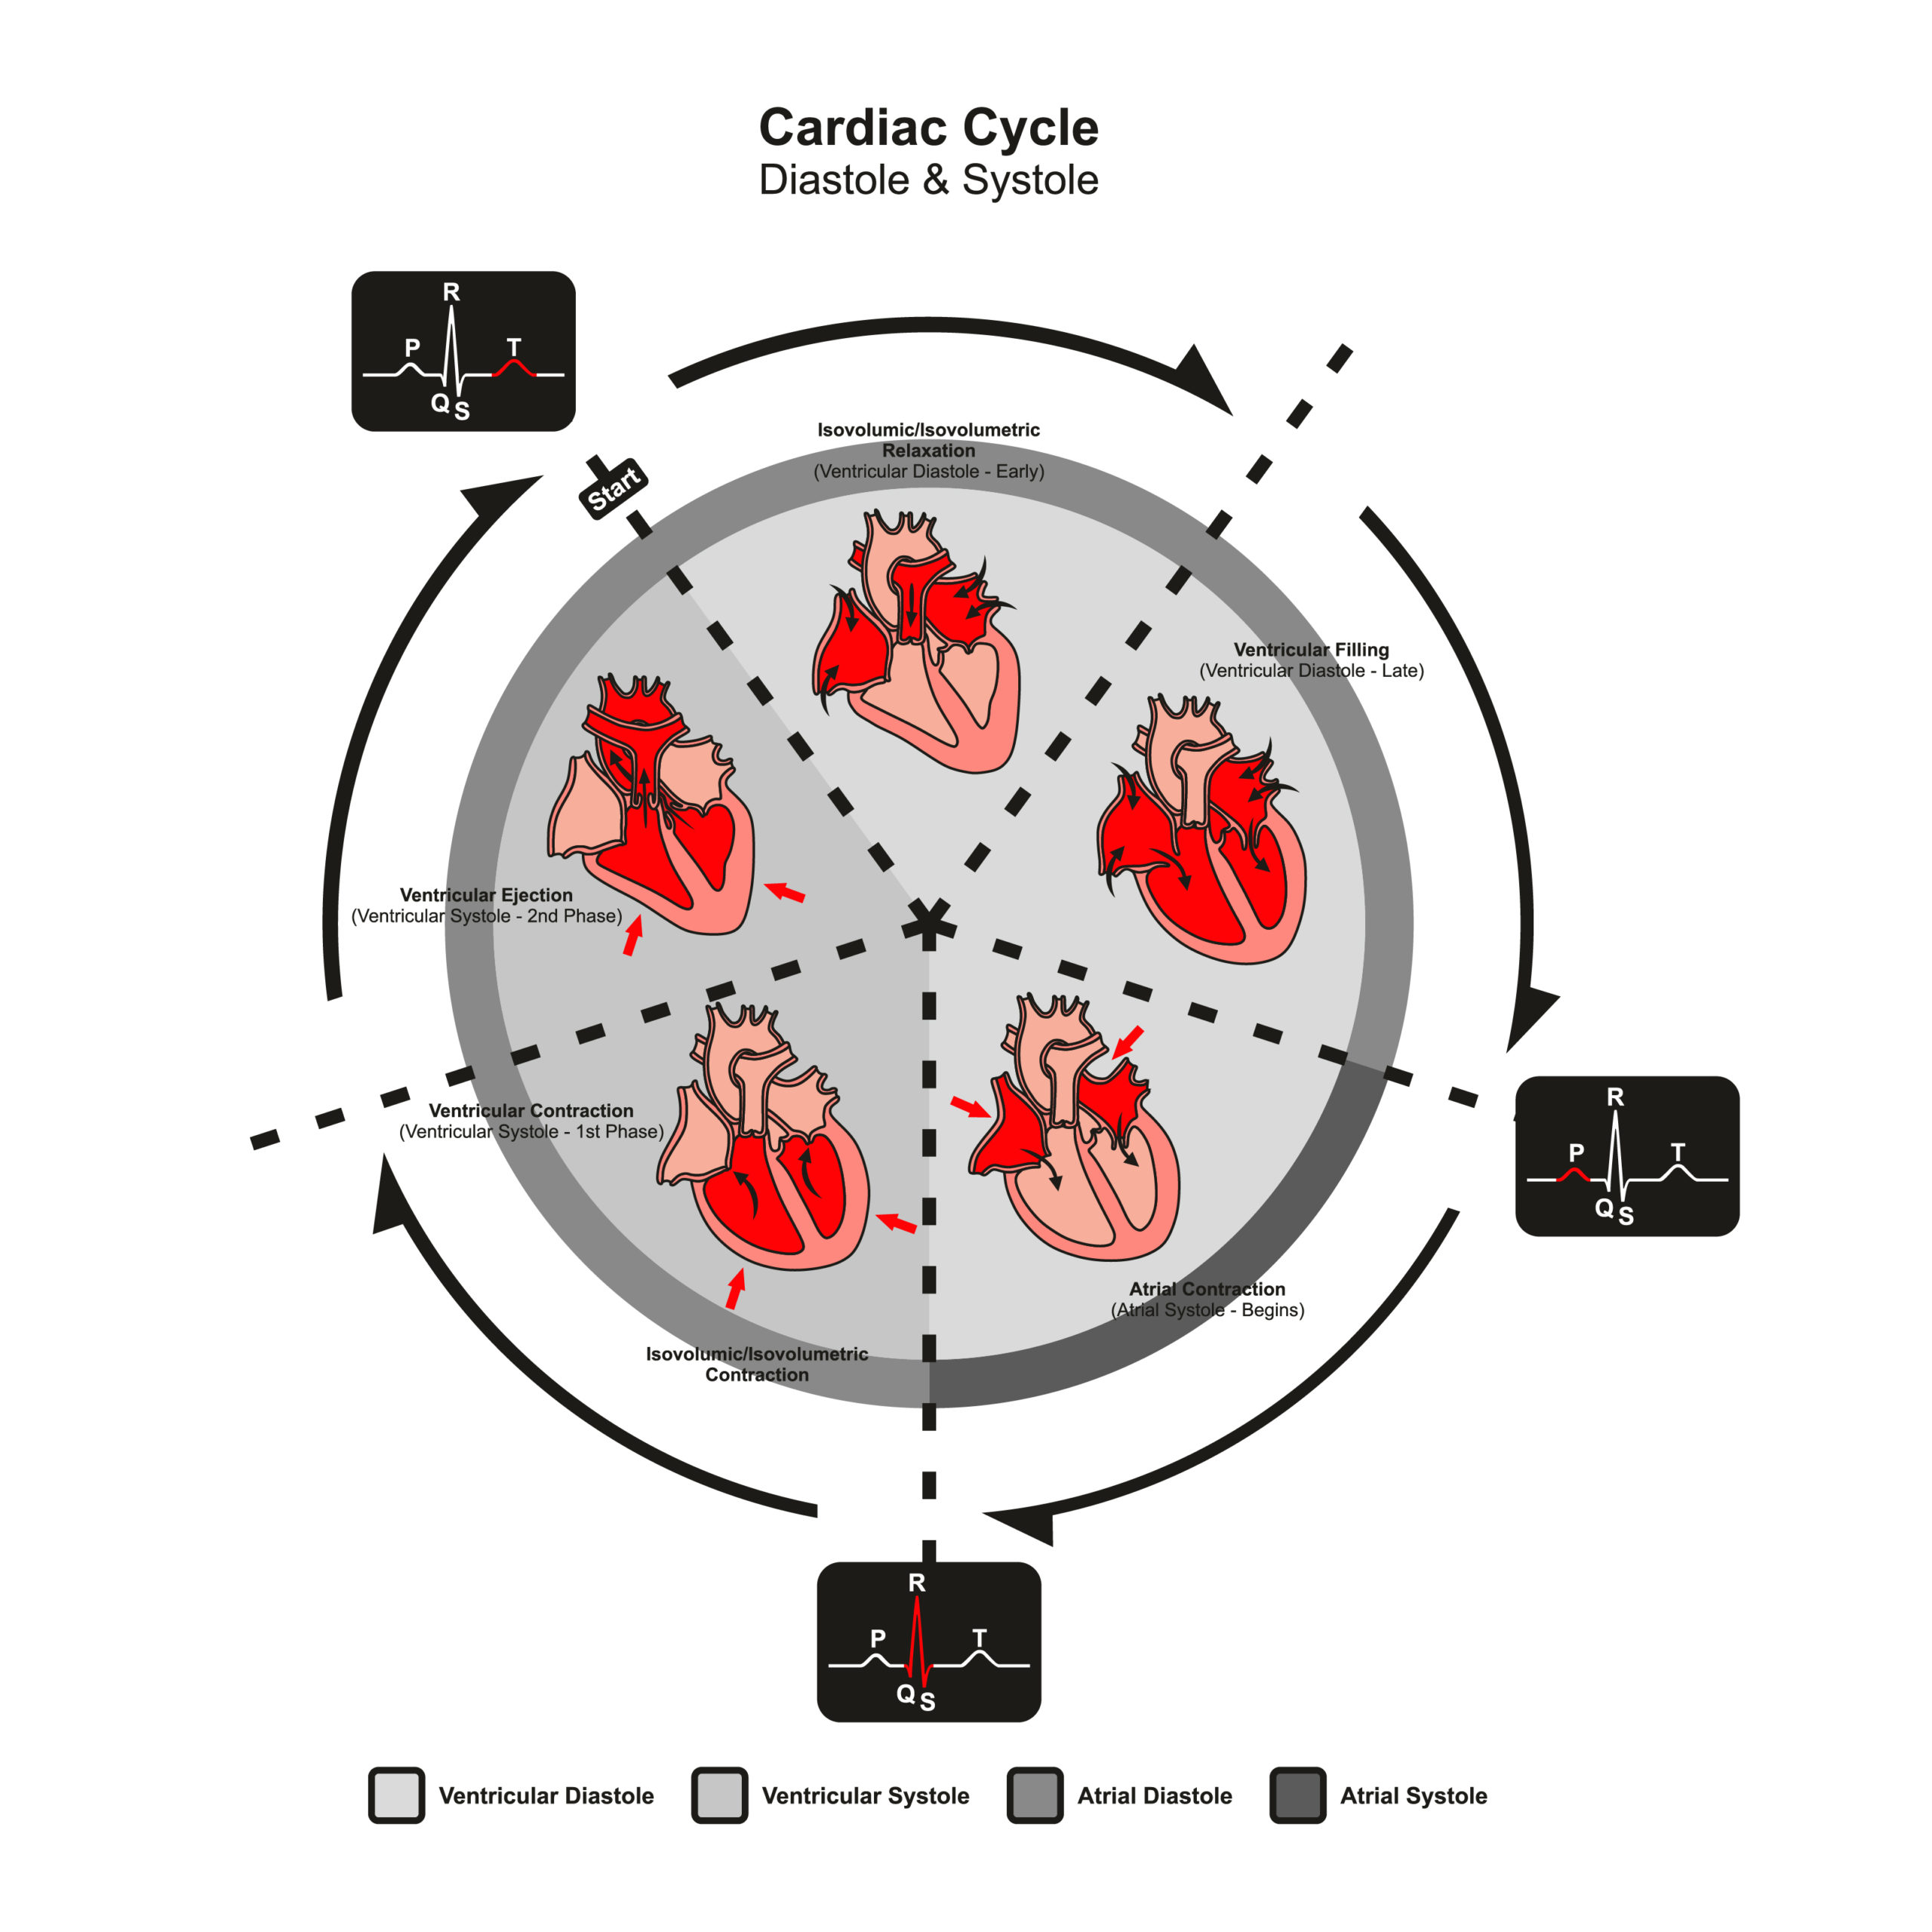 Infographic about the cardiac cycle with all phases of diastole and systole.